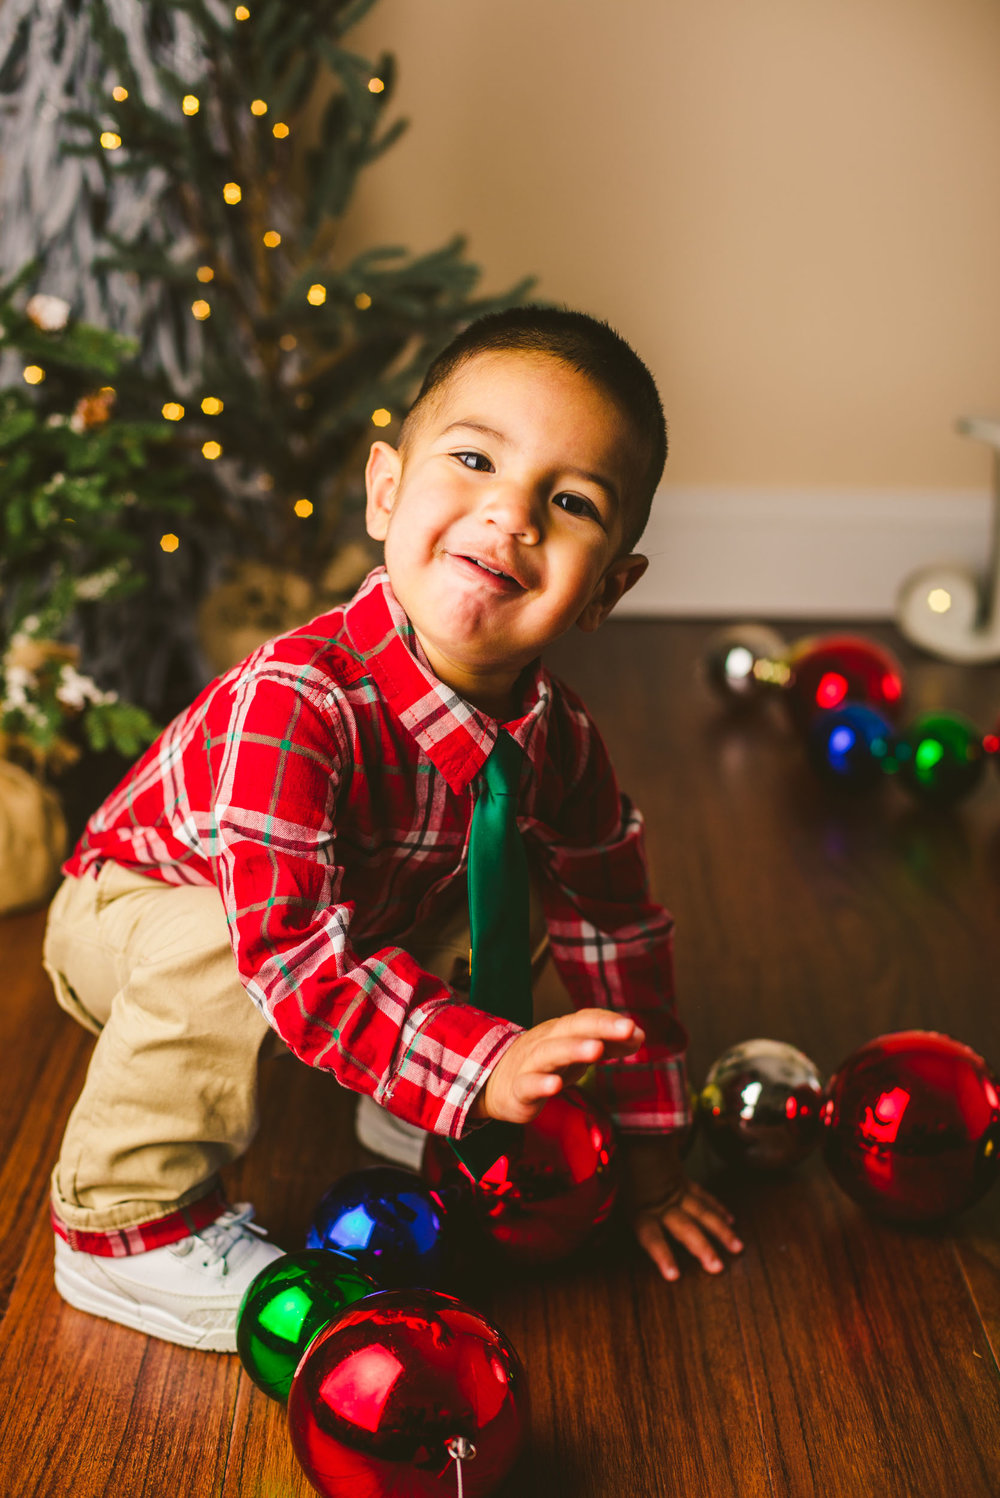 long-island-photographer-families-kids-christmas-mini-sessions-holiday-snow-lights-1.jpg